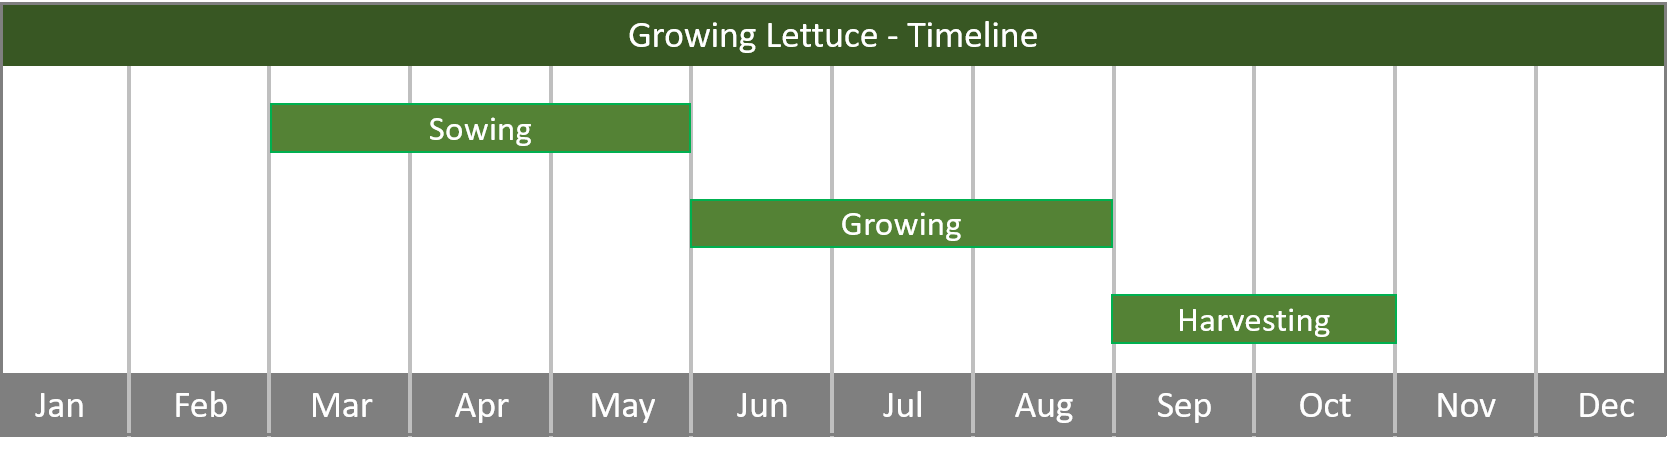 how to grow lettuce from seed to harvest at home timeline